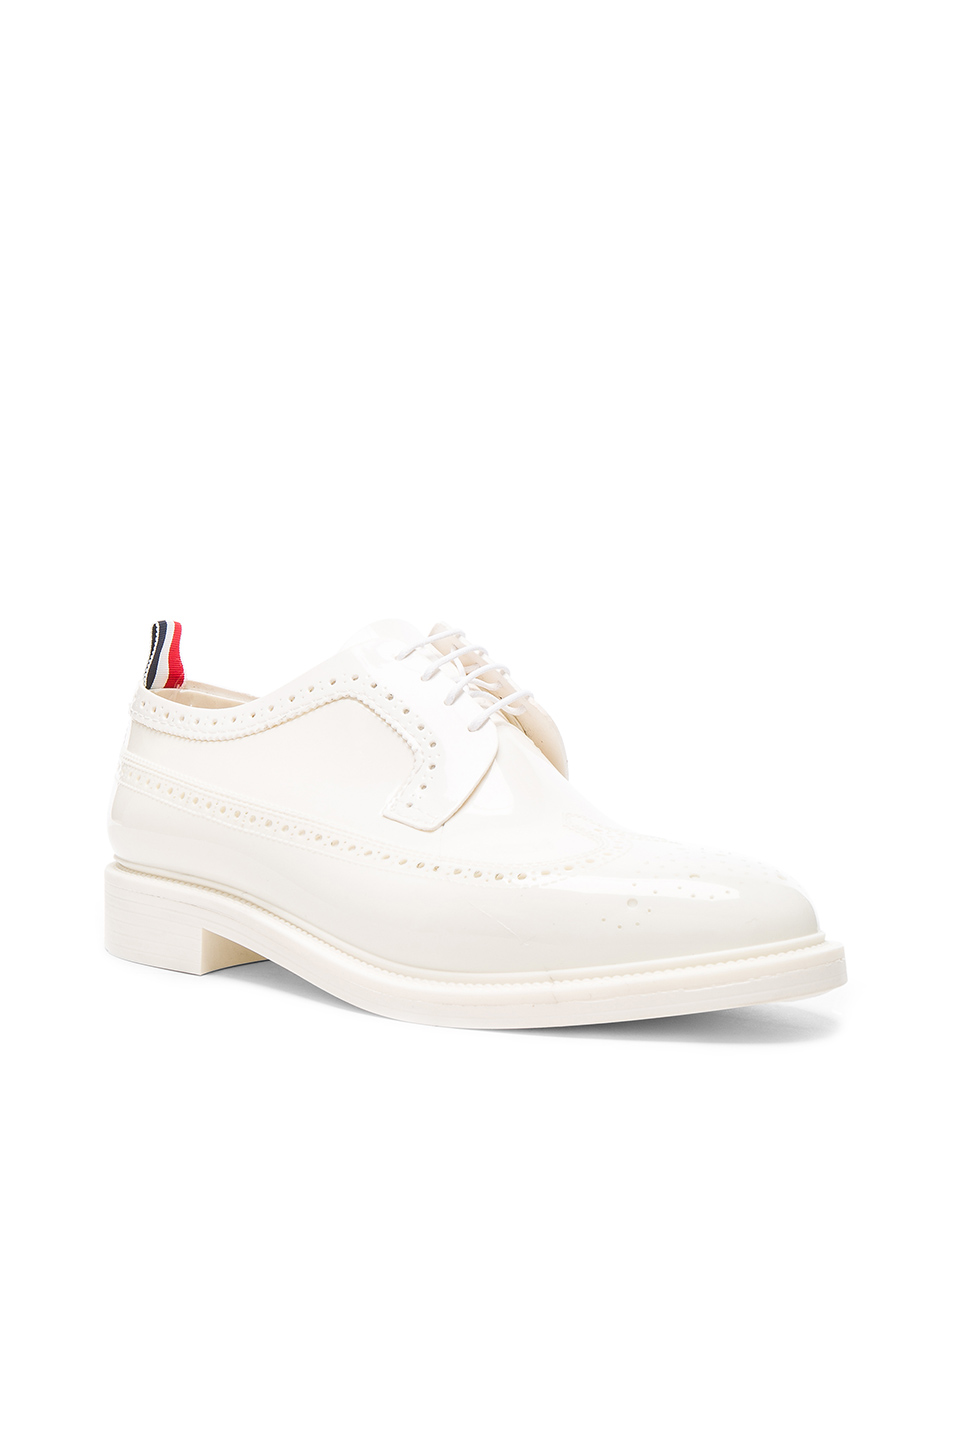 Thom Browne Rubber Brogues in White